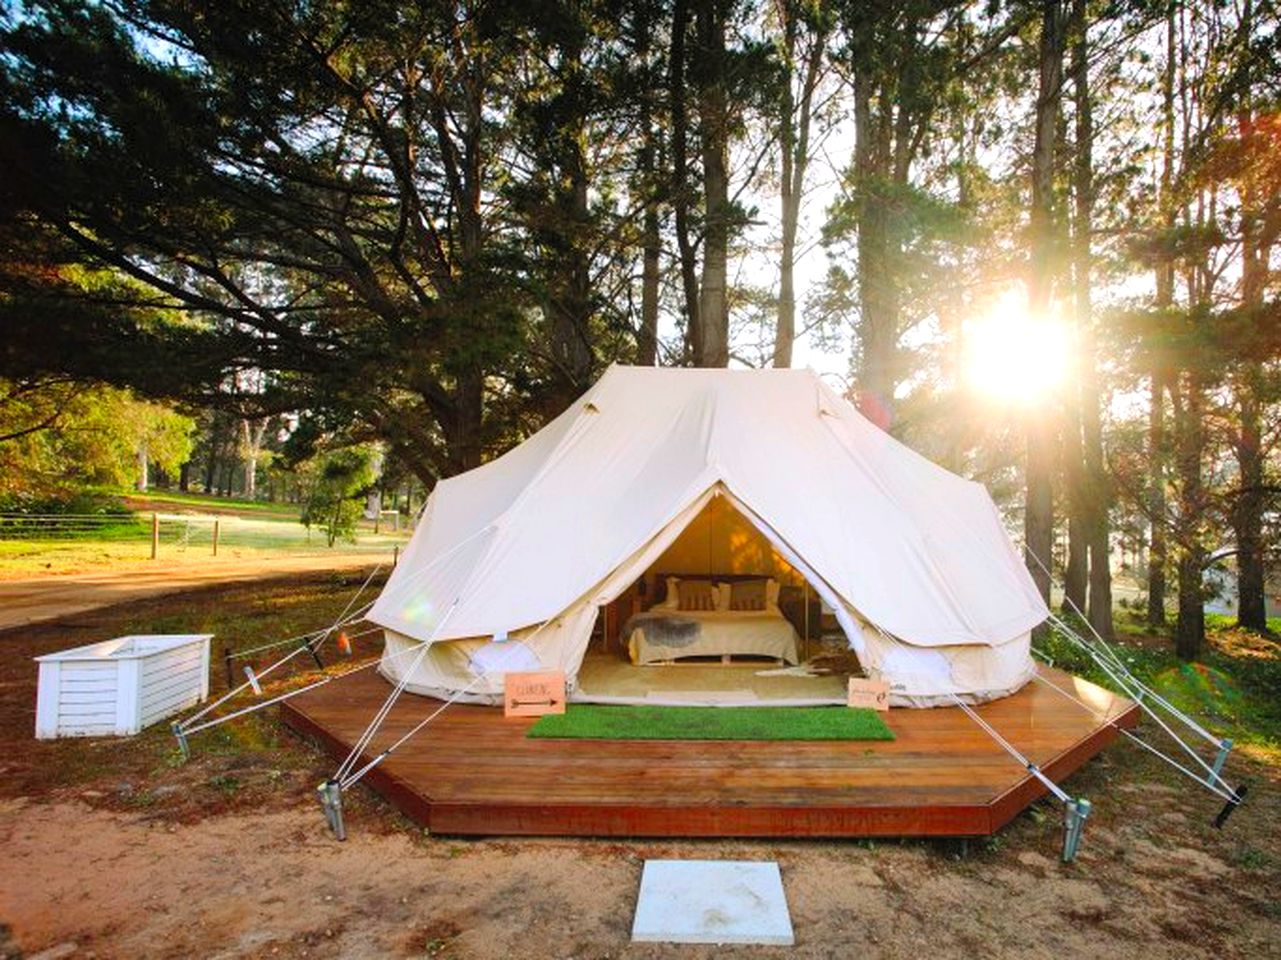 This lovely bell tent rental on its private deck and surrounded by trees is perfect for glamping in Western Australia